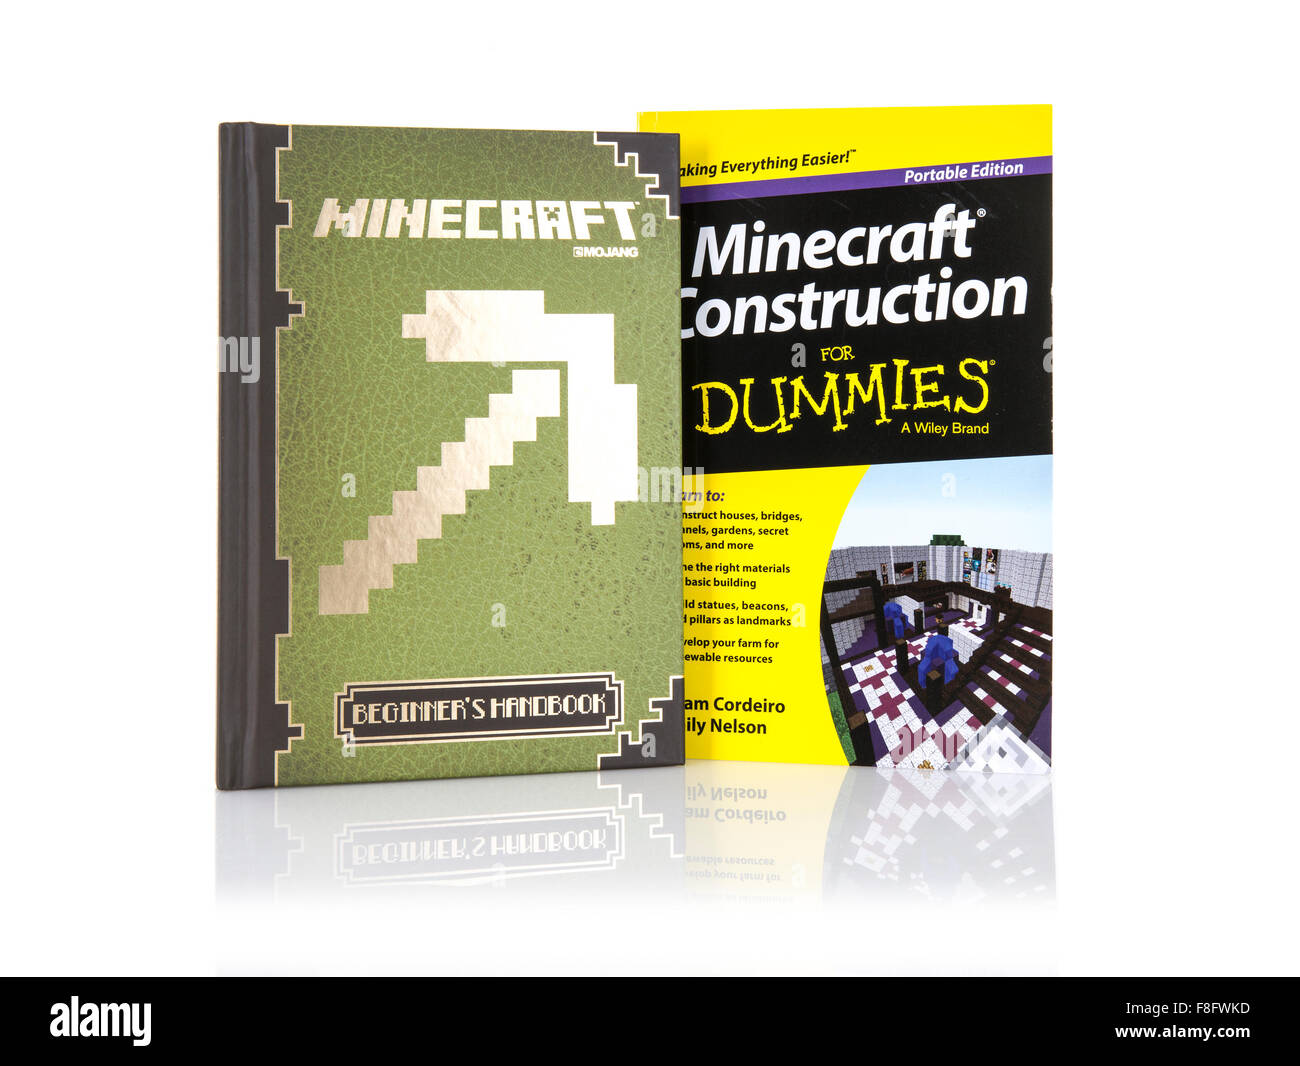 Minecraft game Books on a White Background - Stock Image